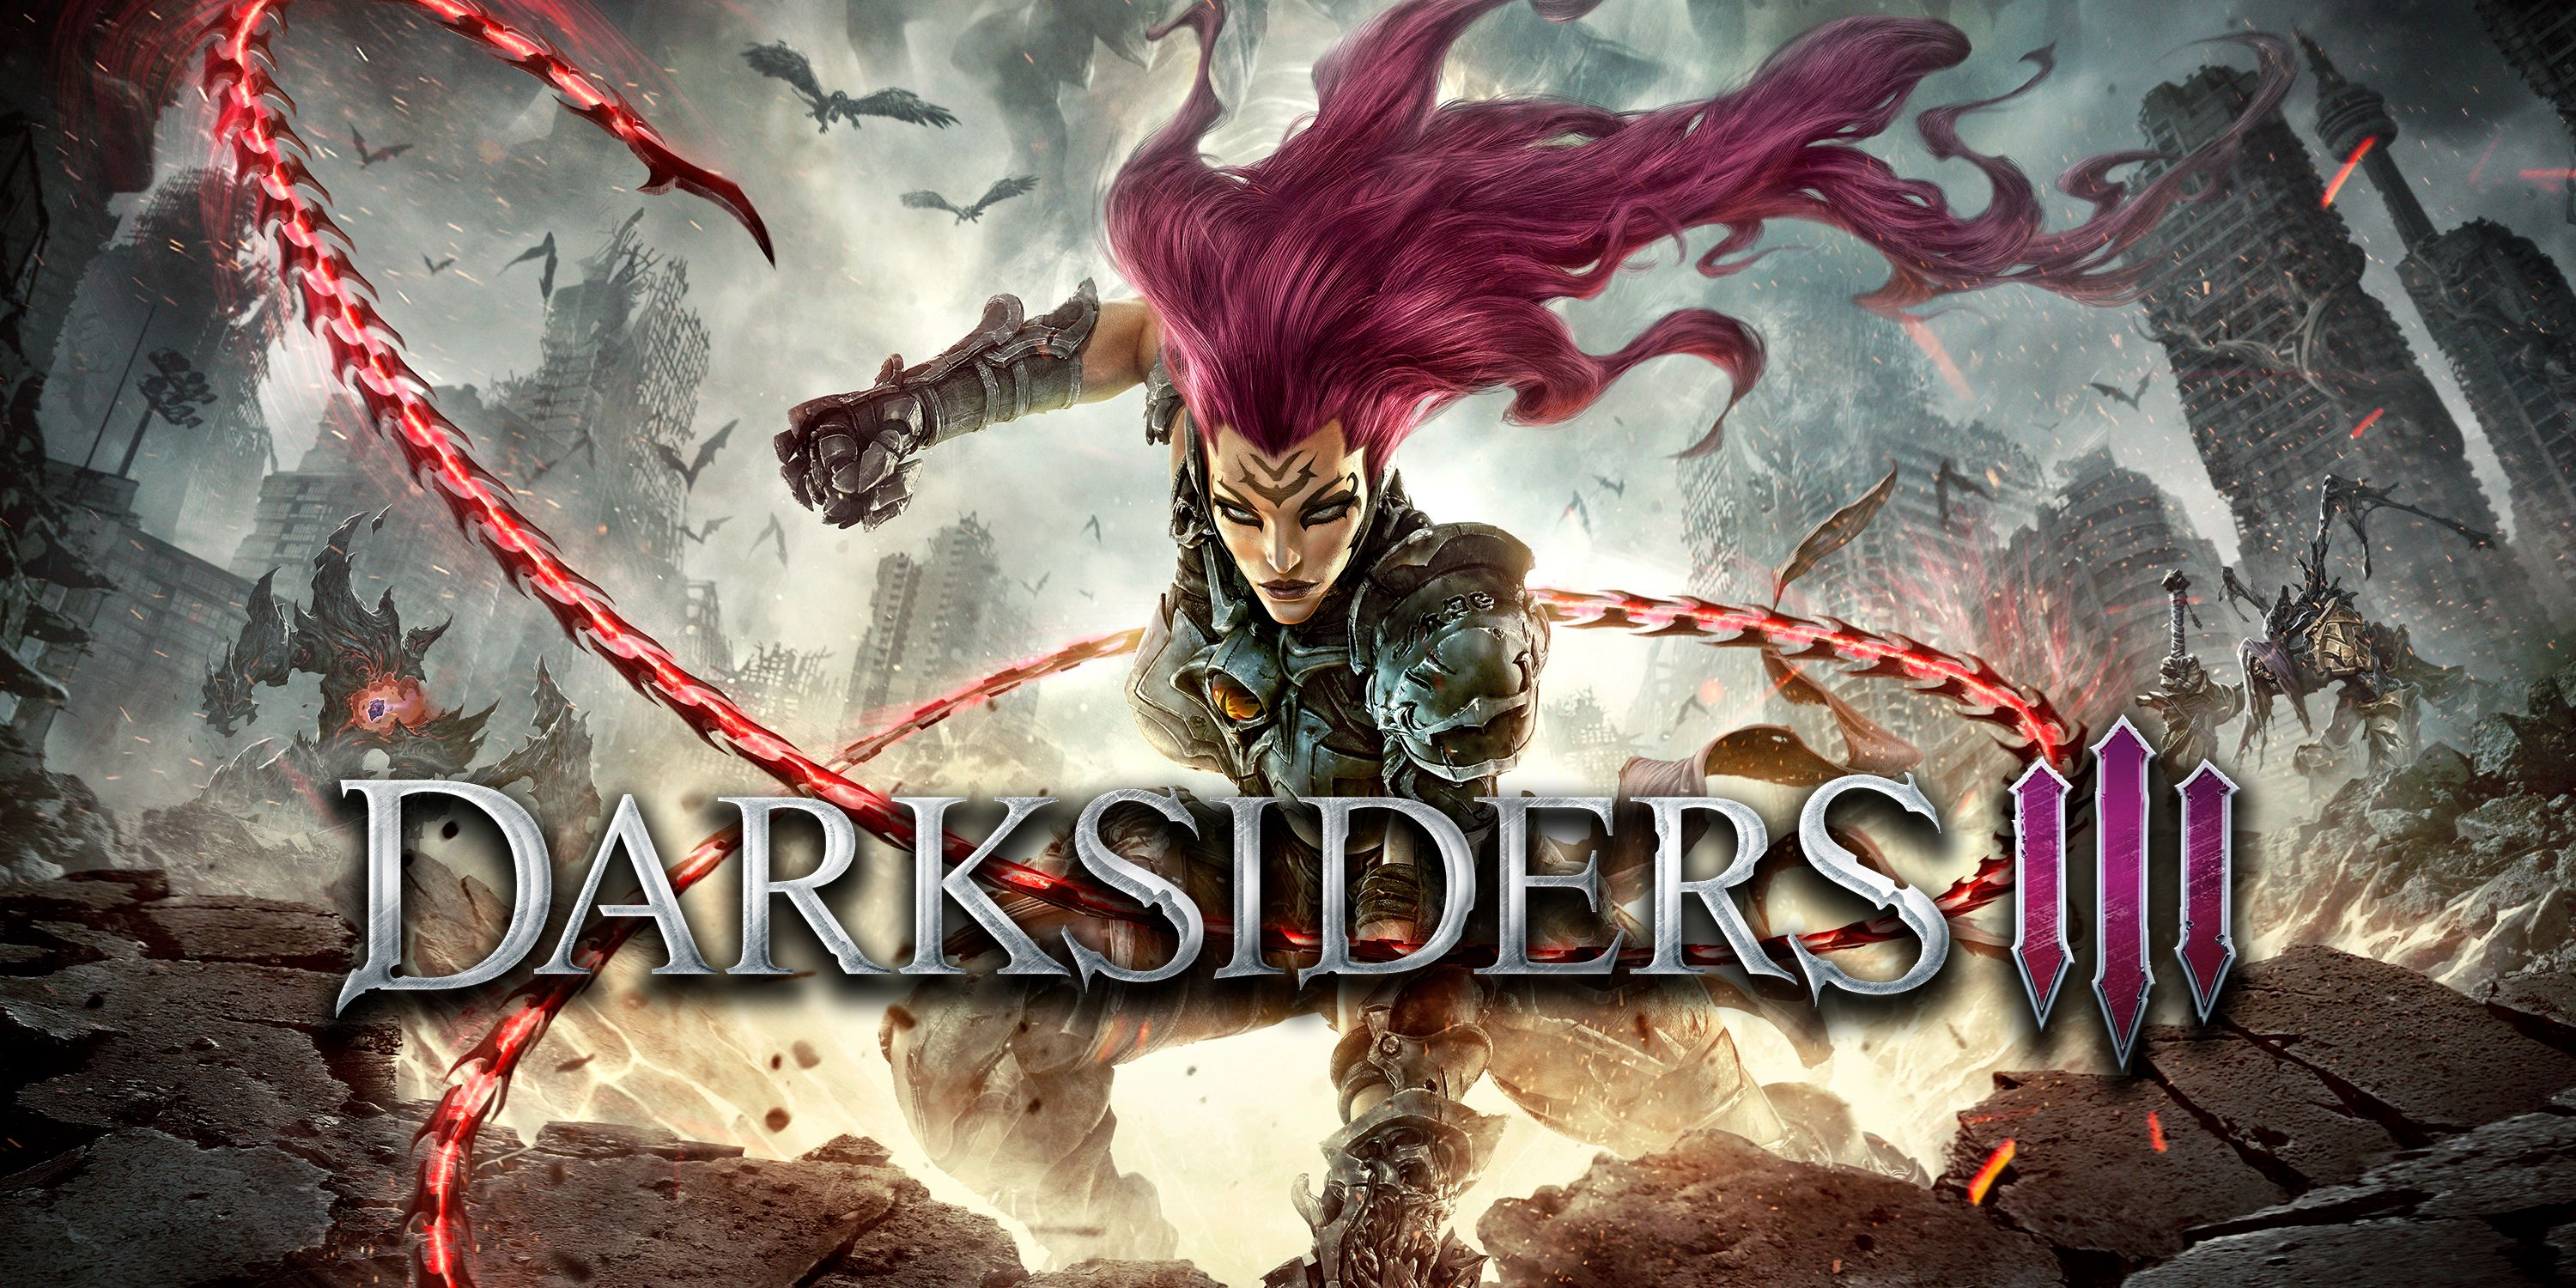 Darksiders 3 Review: An Entertaining End To The World